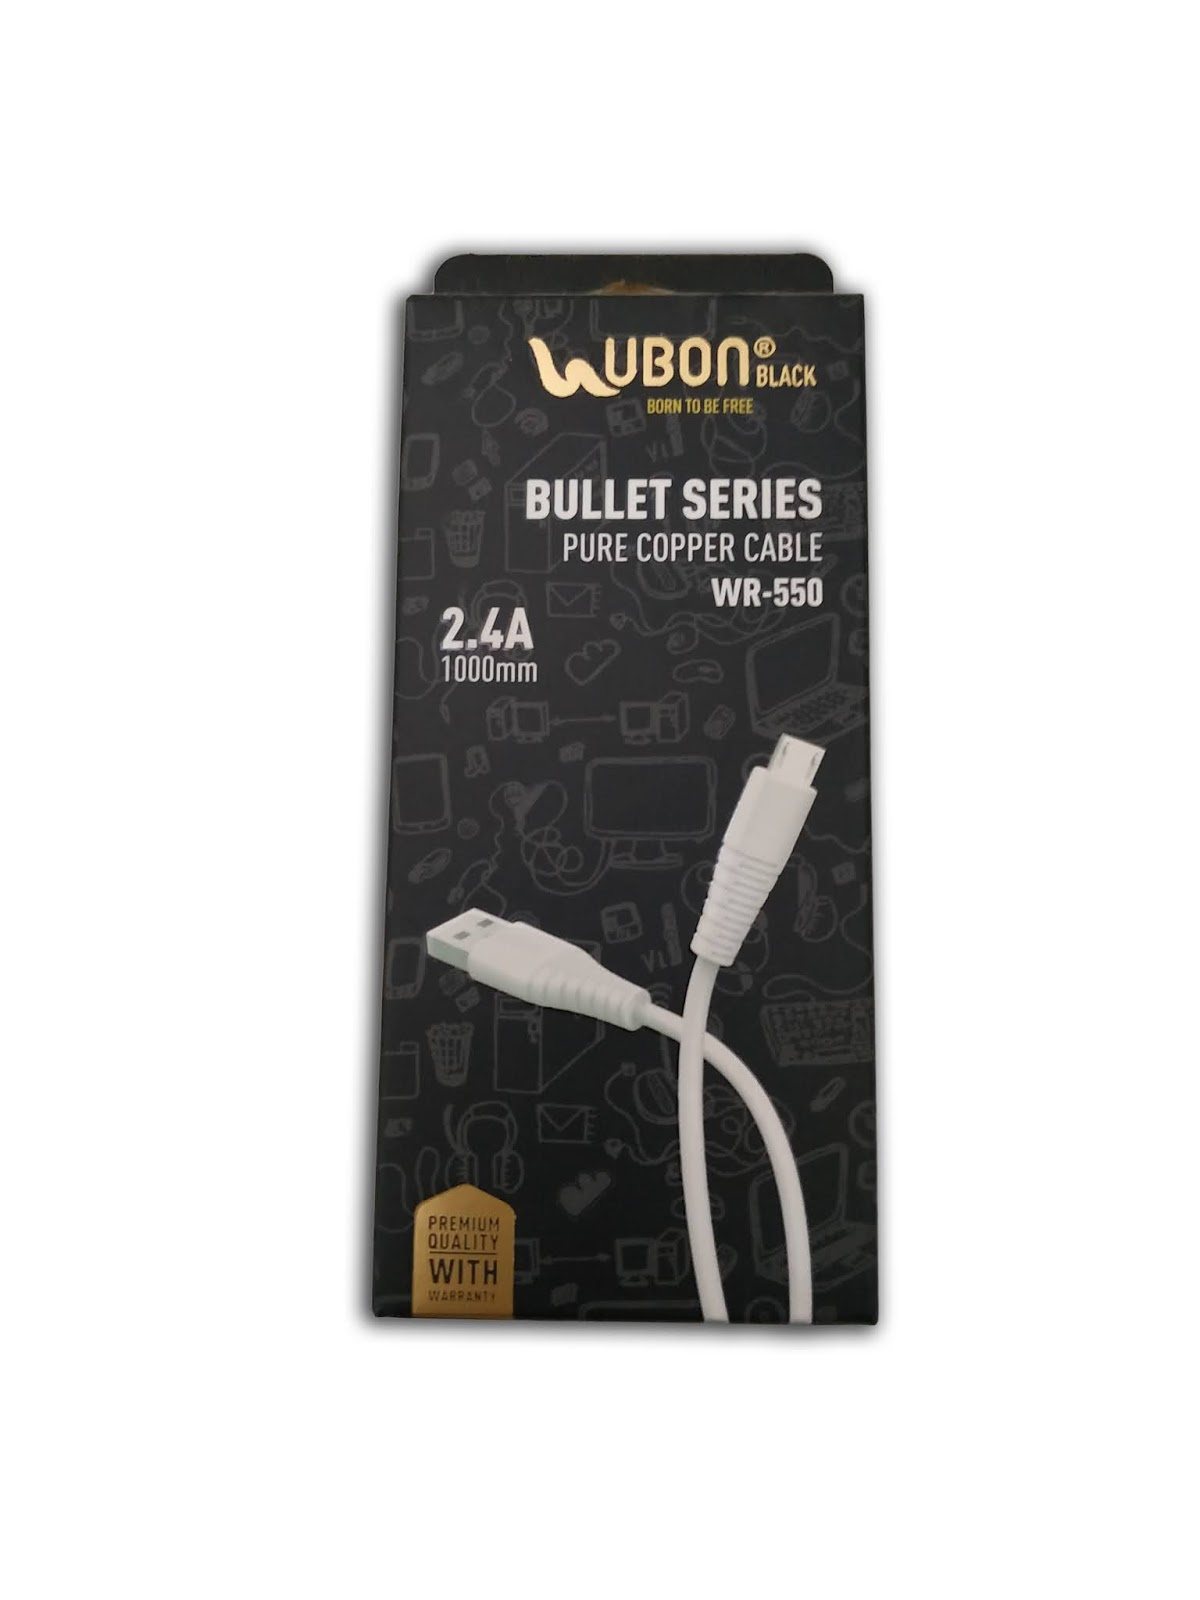 Ubon Bullet Series WR-550 Pure Copper Cable 2.4A Dual Use V8 Charger Cable Or Data Cable (White, Black)